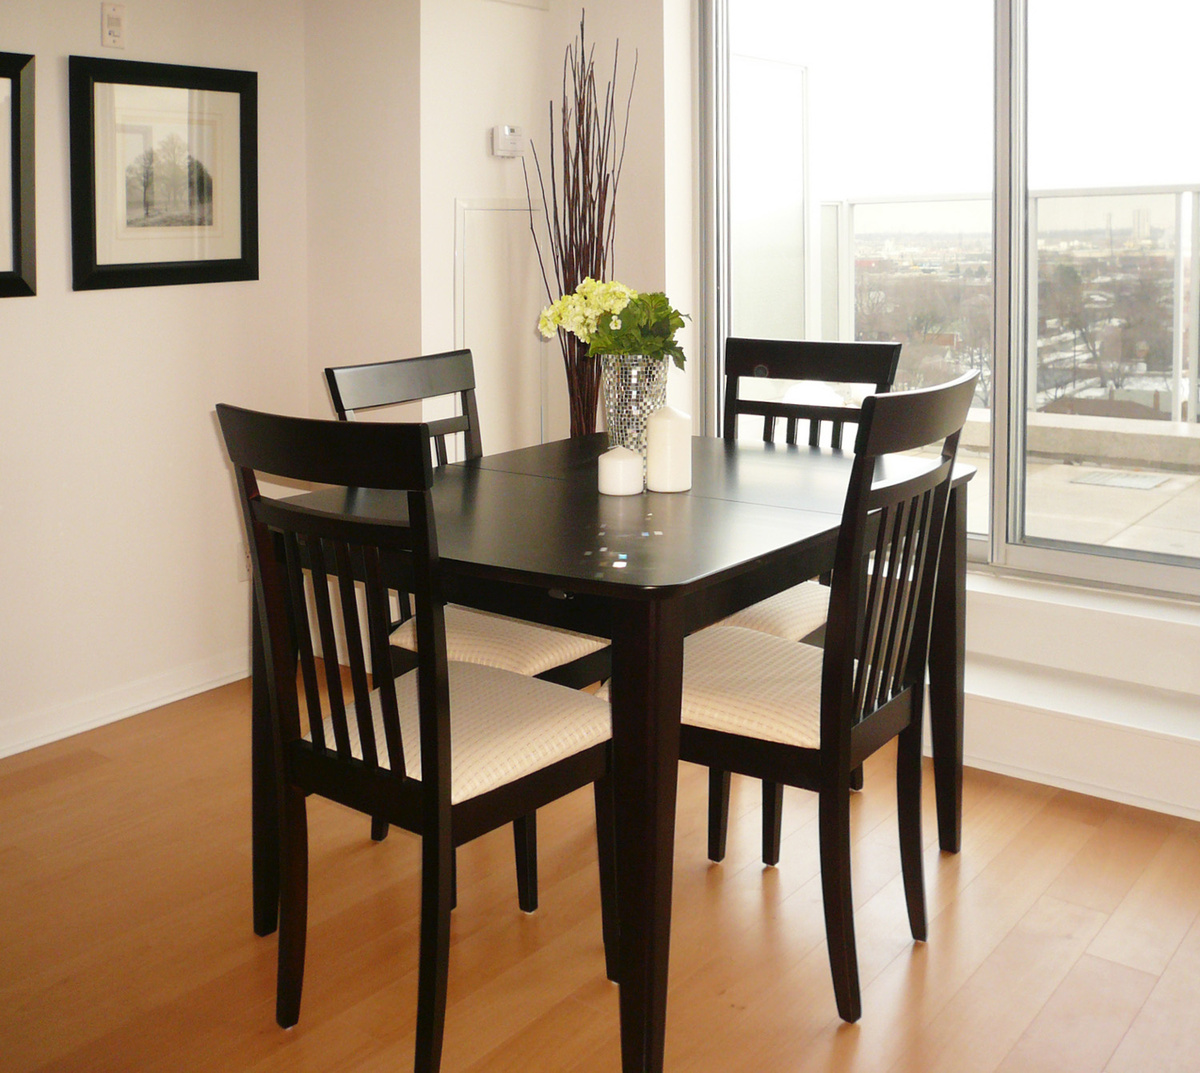 Downtown Slat Toronto Furniture Rental For Home Staging By Luxury Furniture